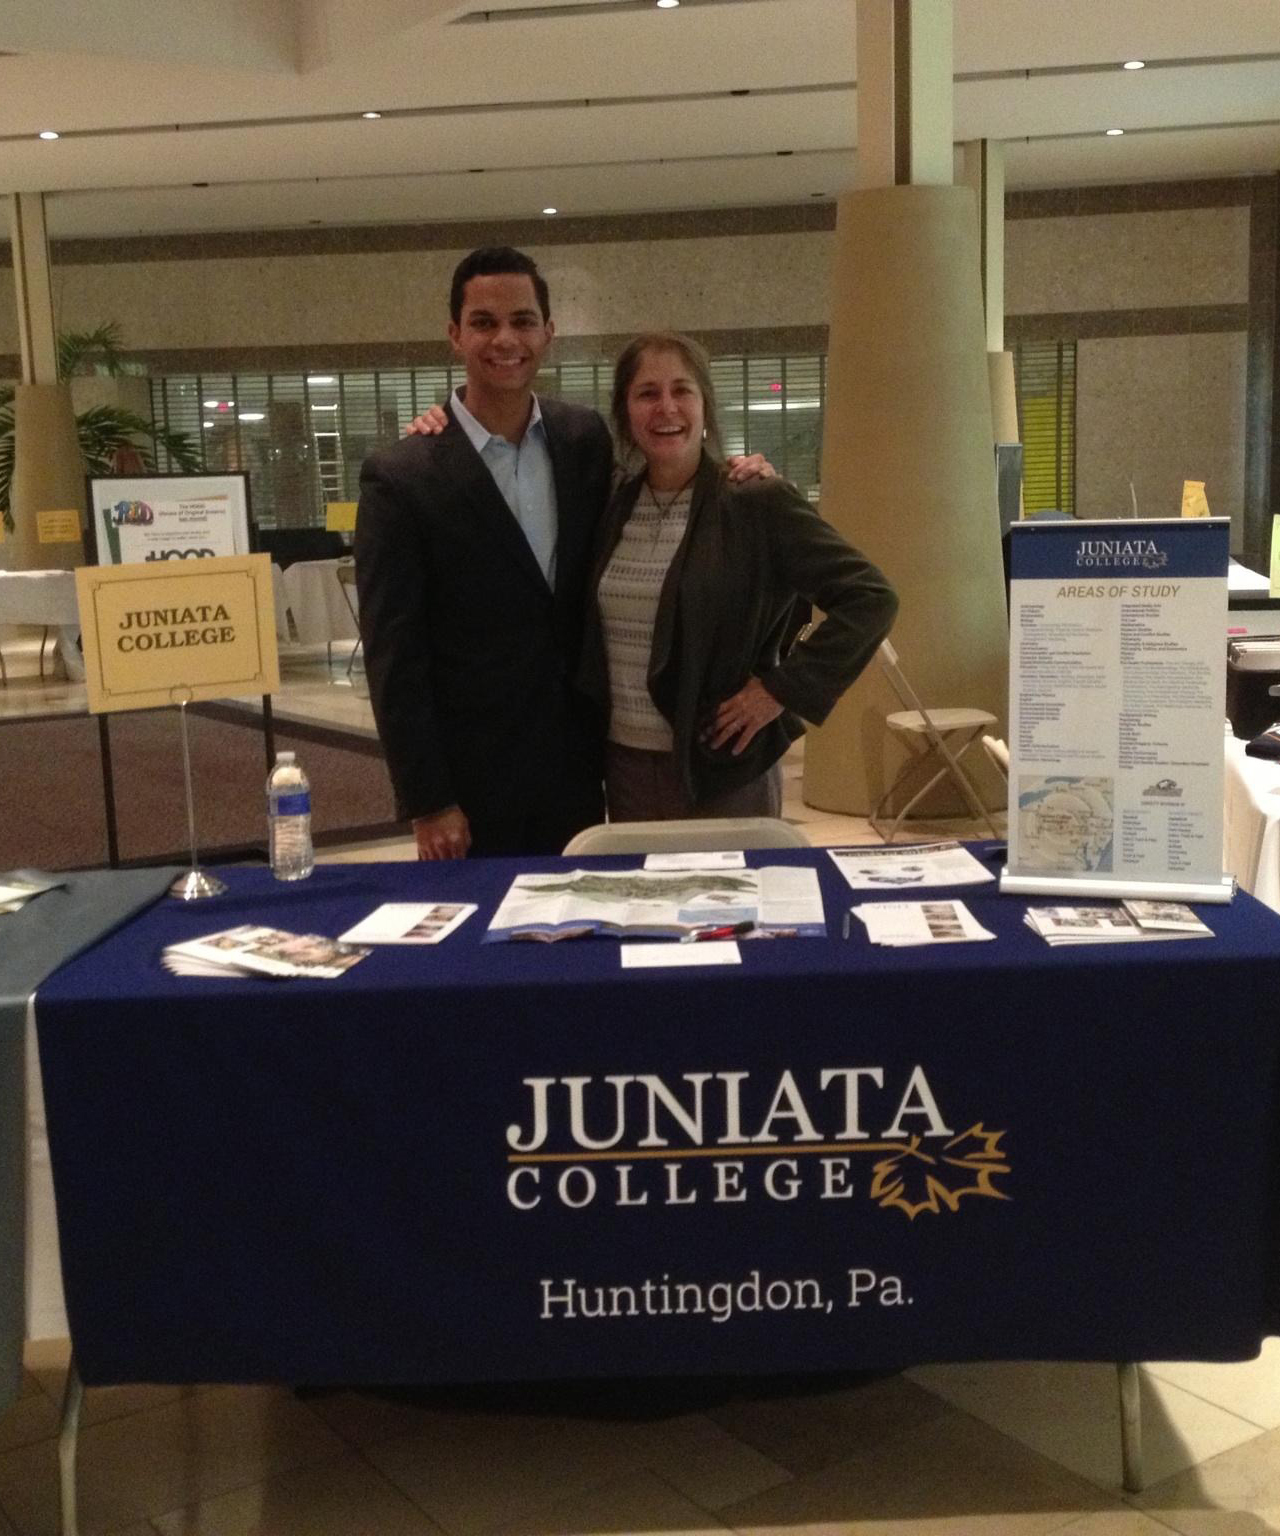 Gabe Castro representing Juniata College at a College Fair